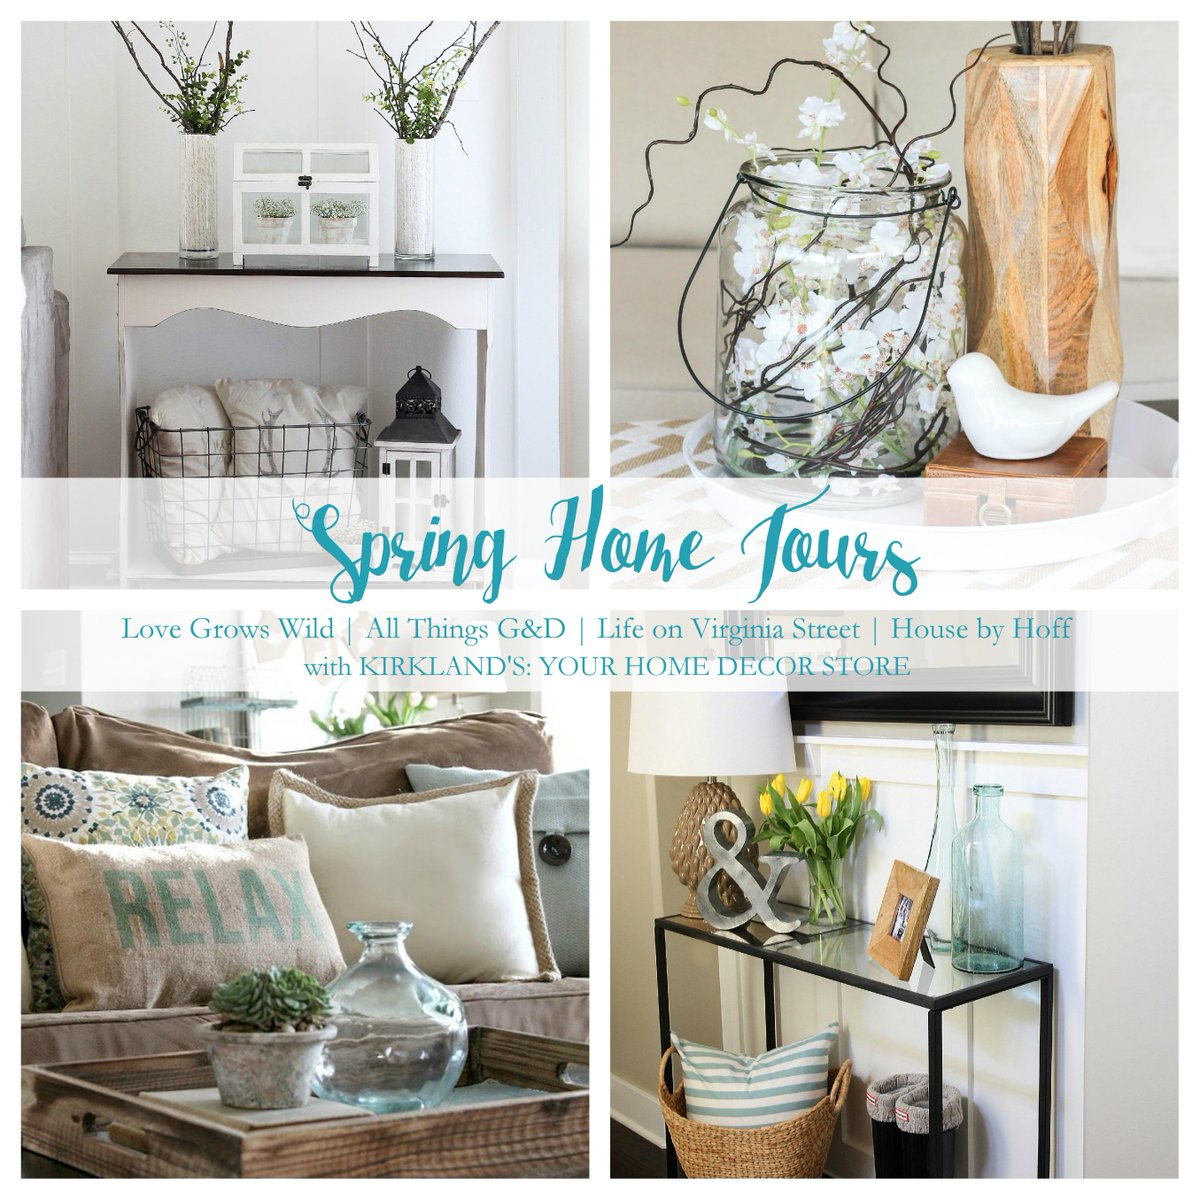 Check out day three of our spring #hometour featuring @LoveGrowsWild, @AllThingsGD, @VirginiaStBlog and #HousebyHoff! http://t.co/BHM3SGrjoy